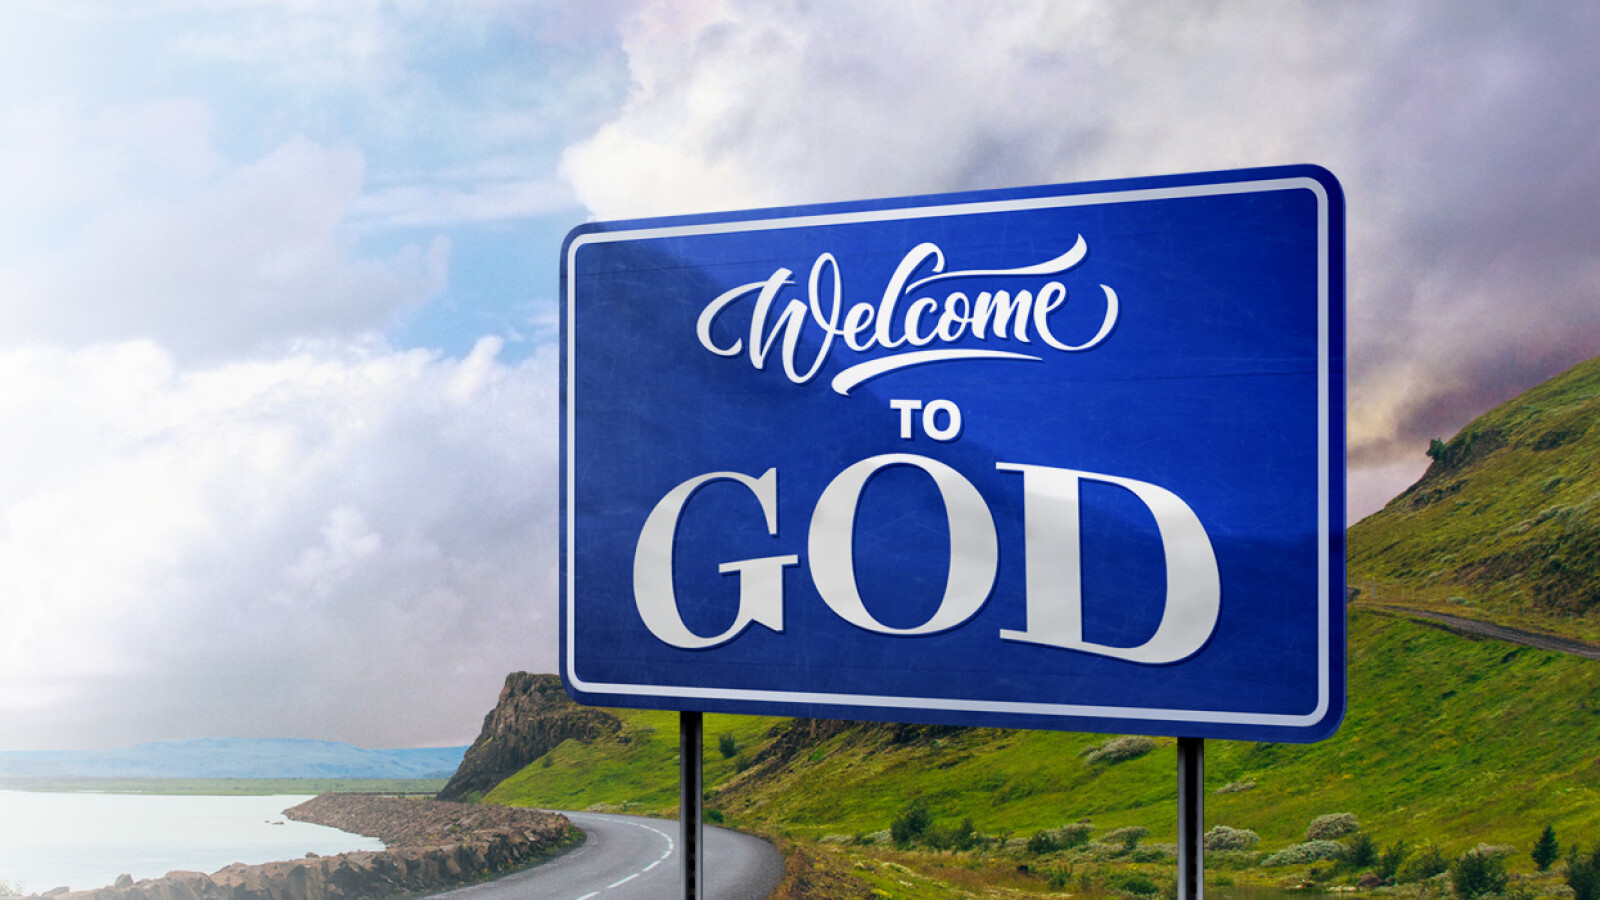 Welcome to God